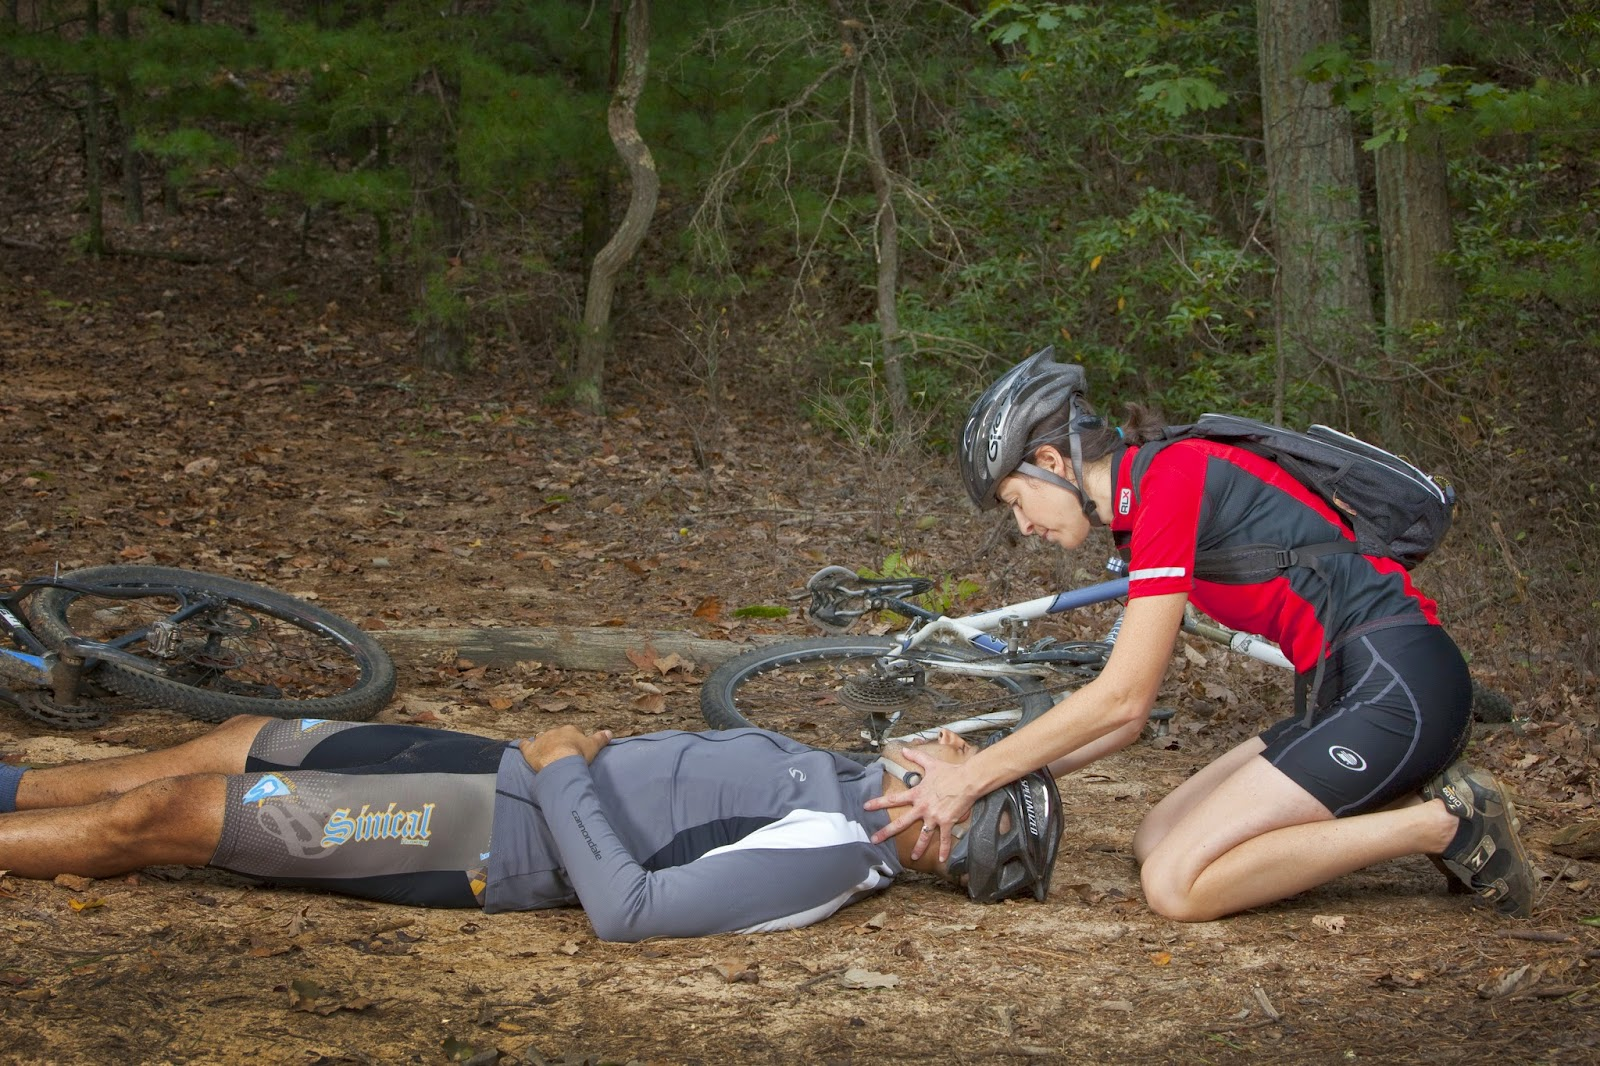 DarkeJournal.com: American Red Cross Goes to the Woods With Wilderness and  Remote First Aid